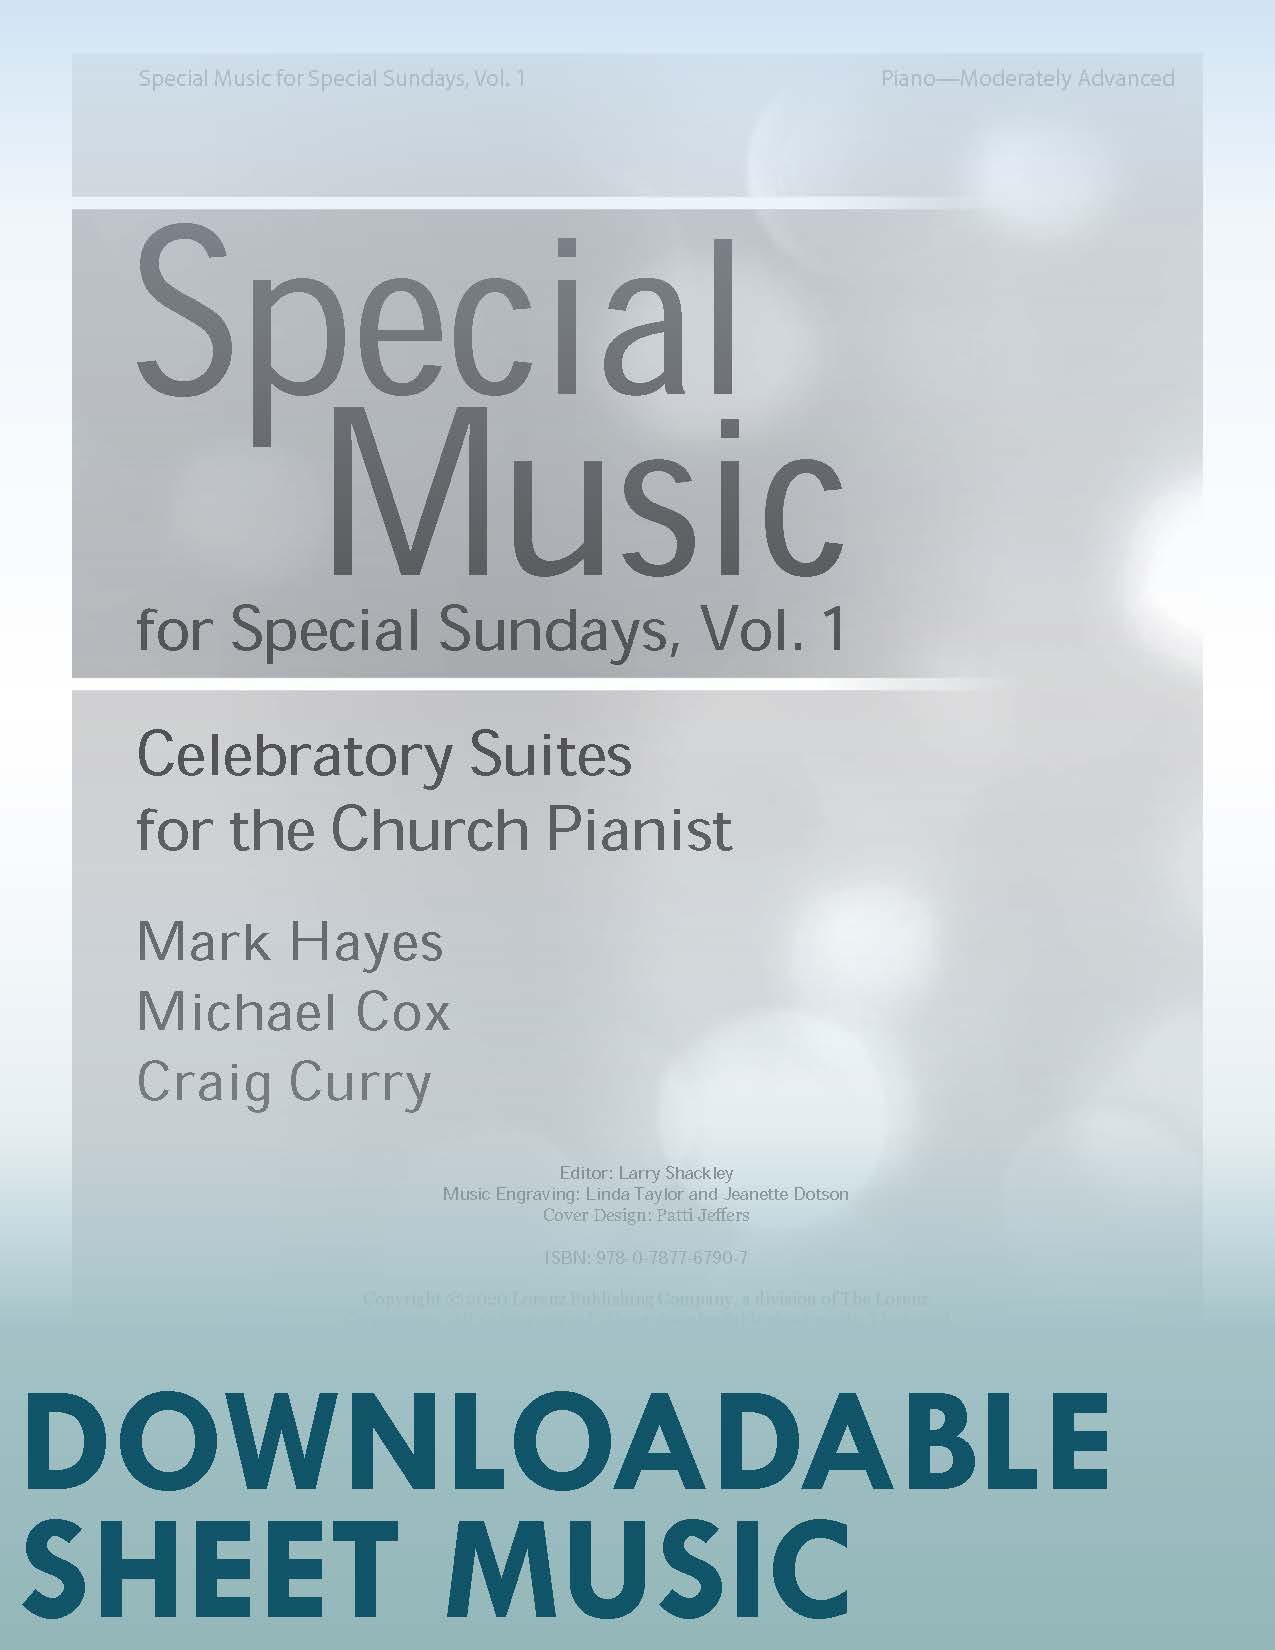 Special Music for Special Sundays, Volume 1 - Digital Download